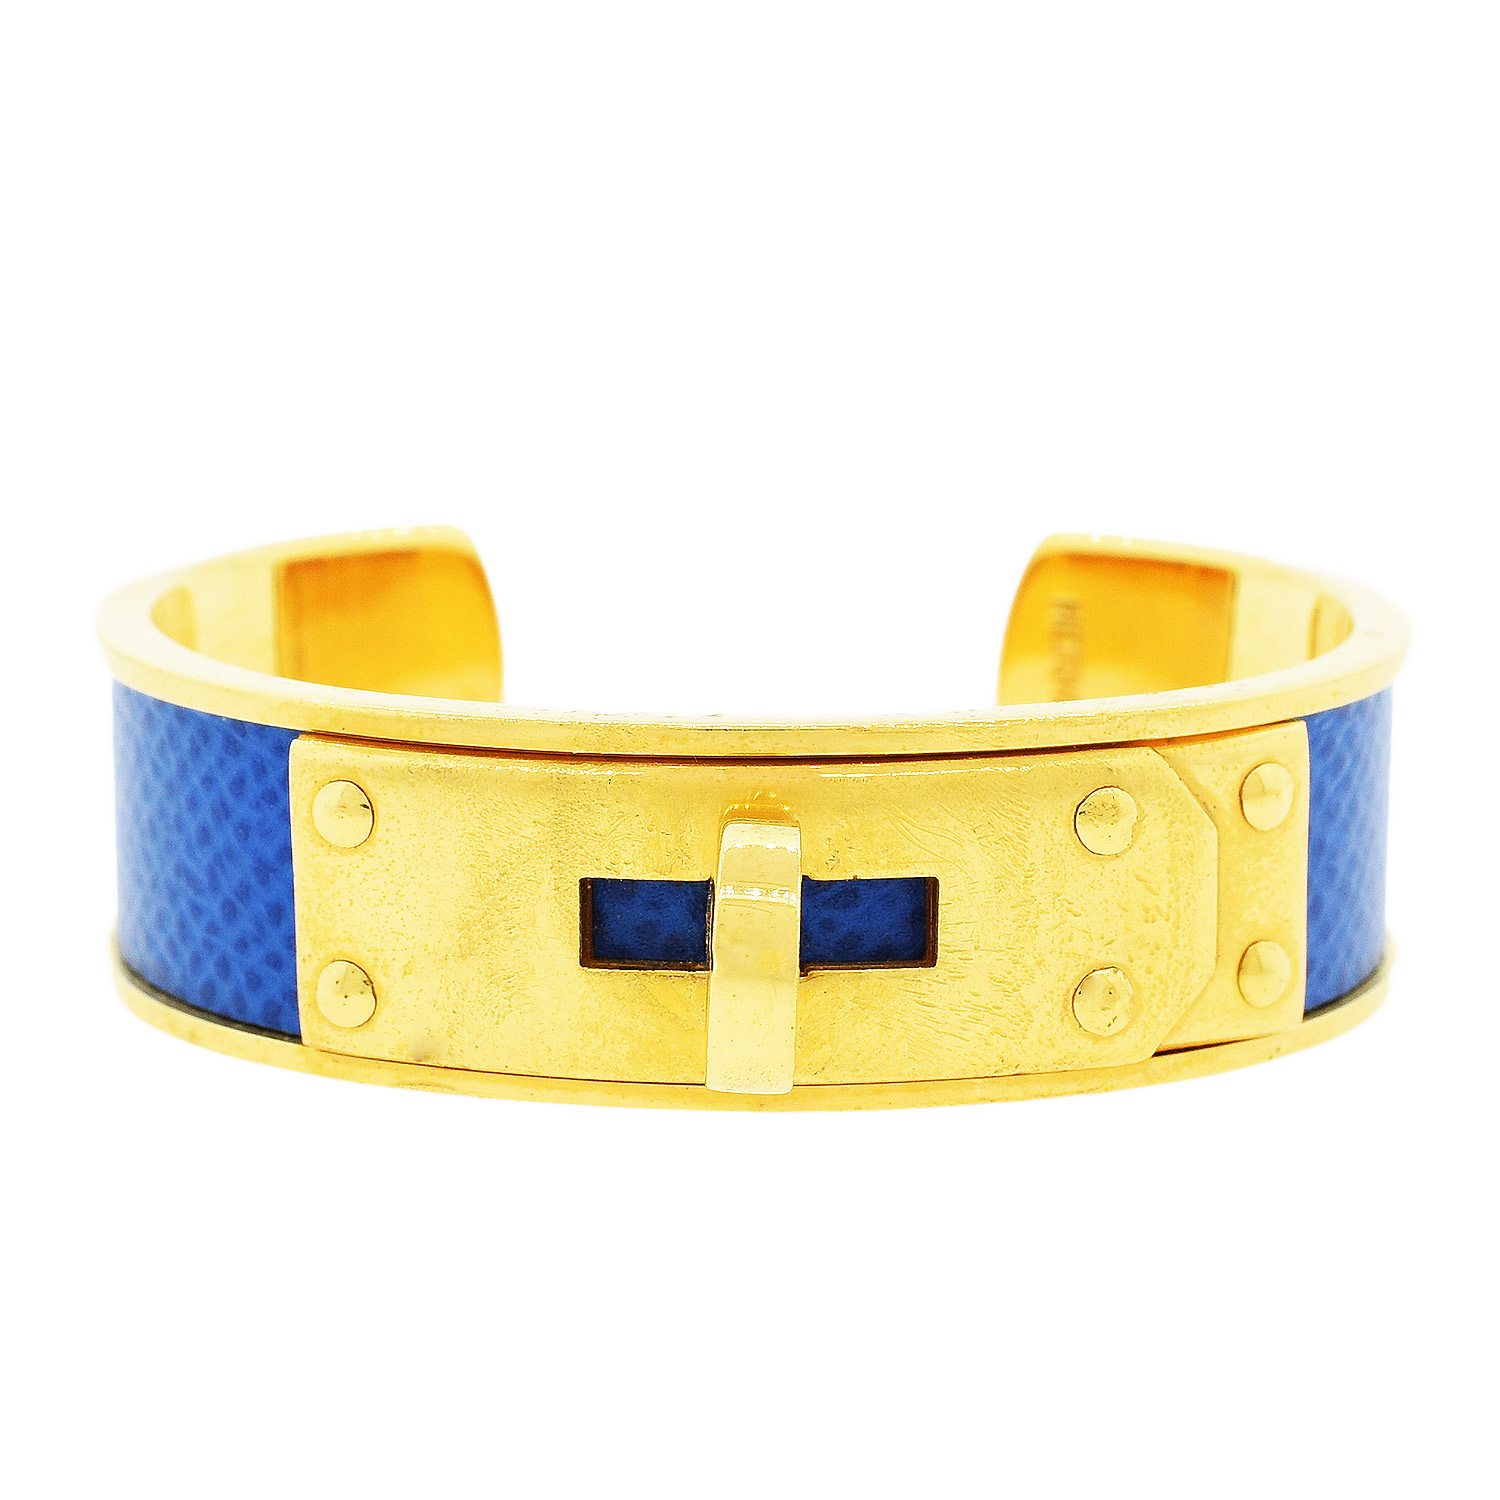 "Image of ""Gold Plated Hermes Gold Plated Blue Kelly Cadena Cuff Bangle Bracelet"""